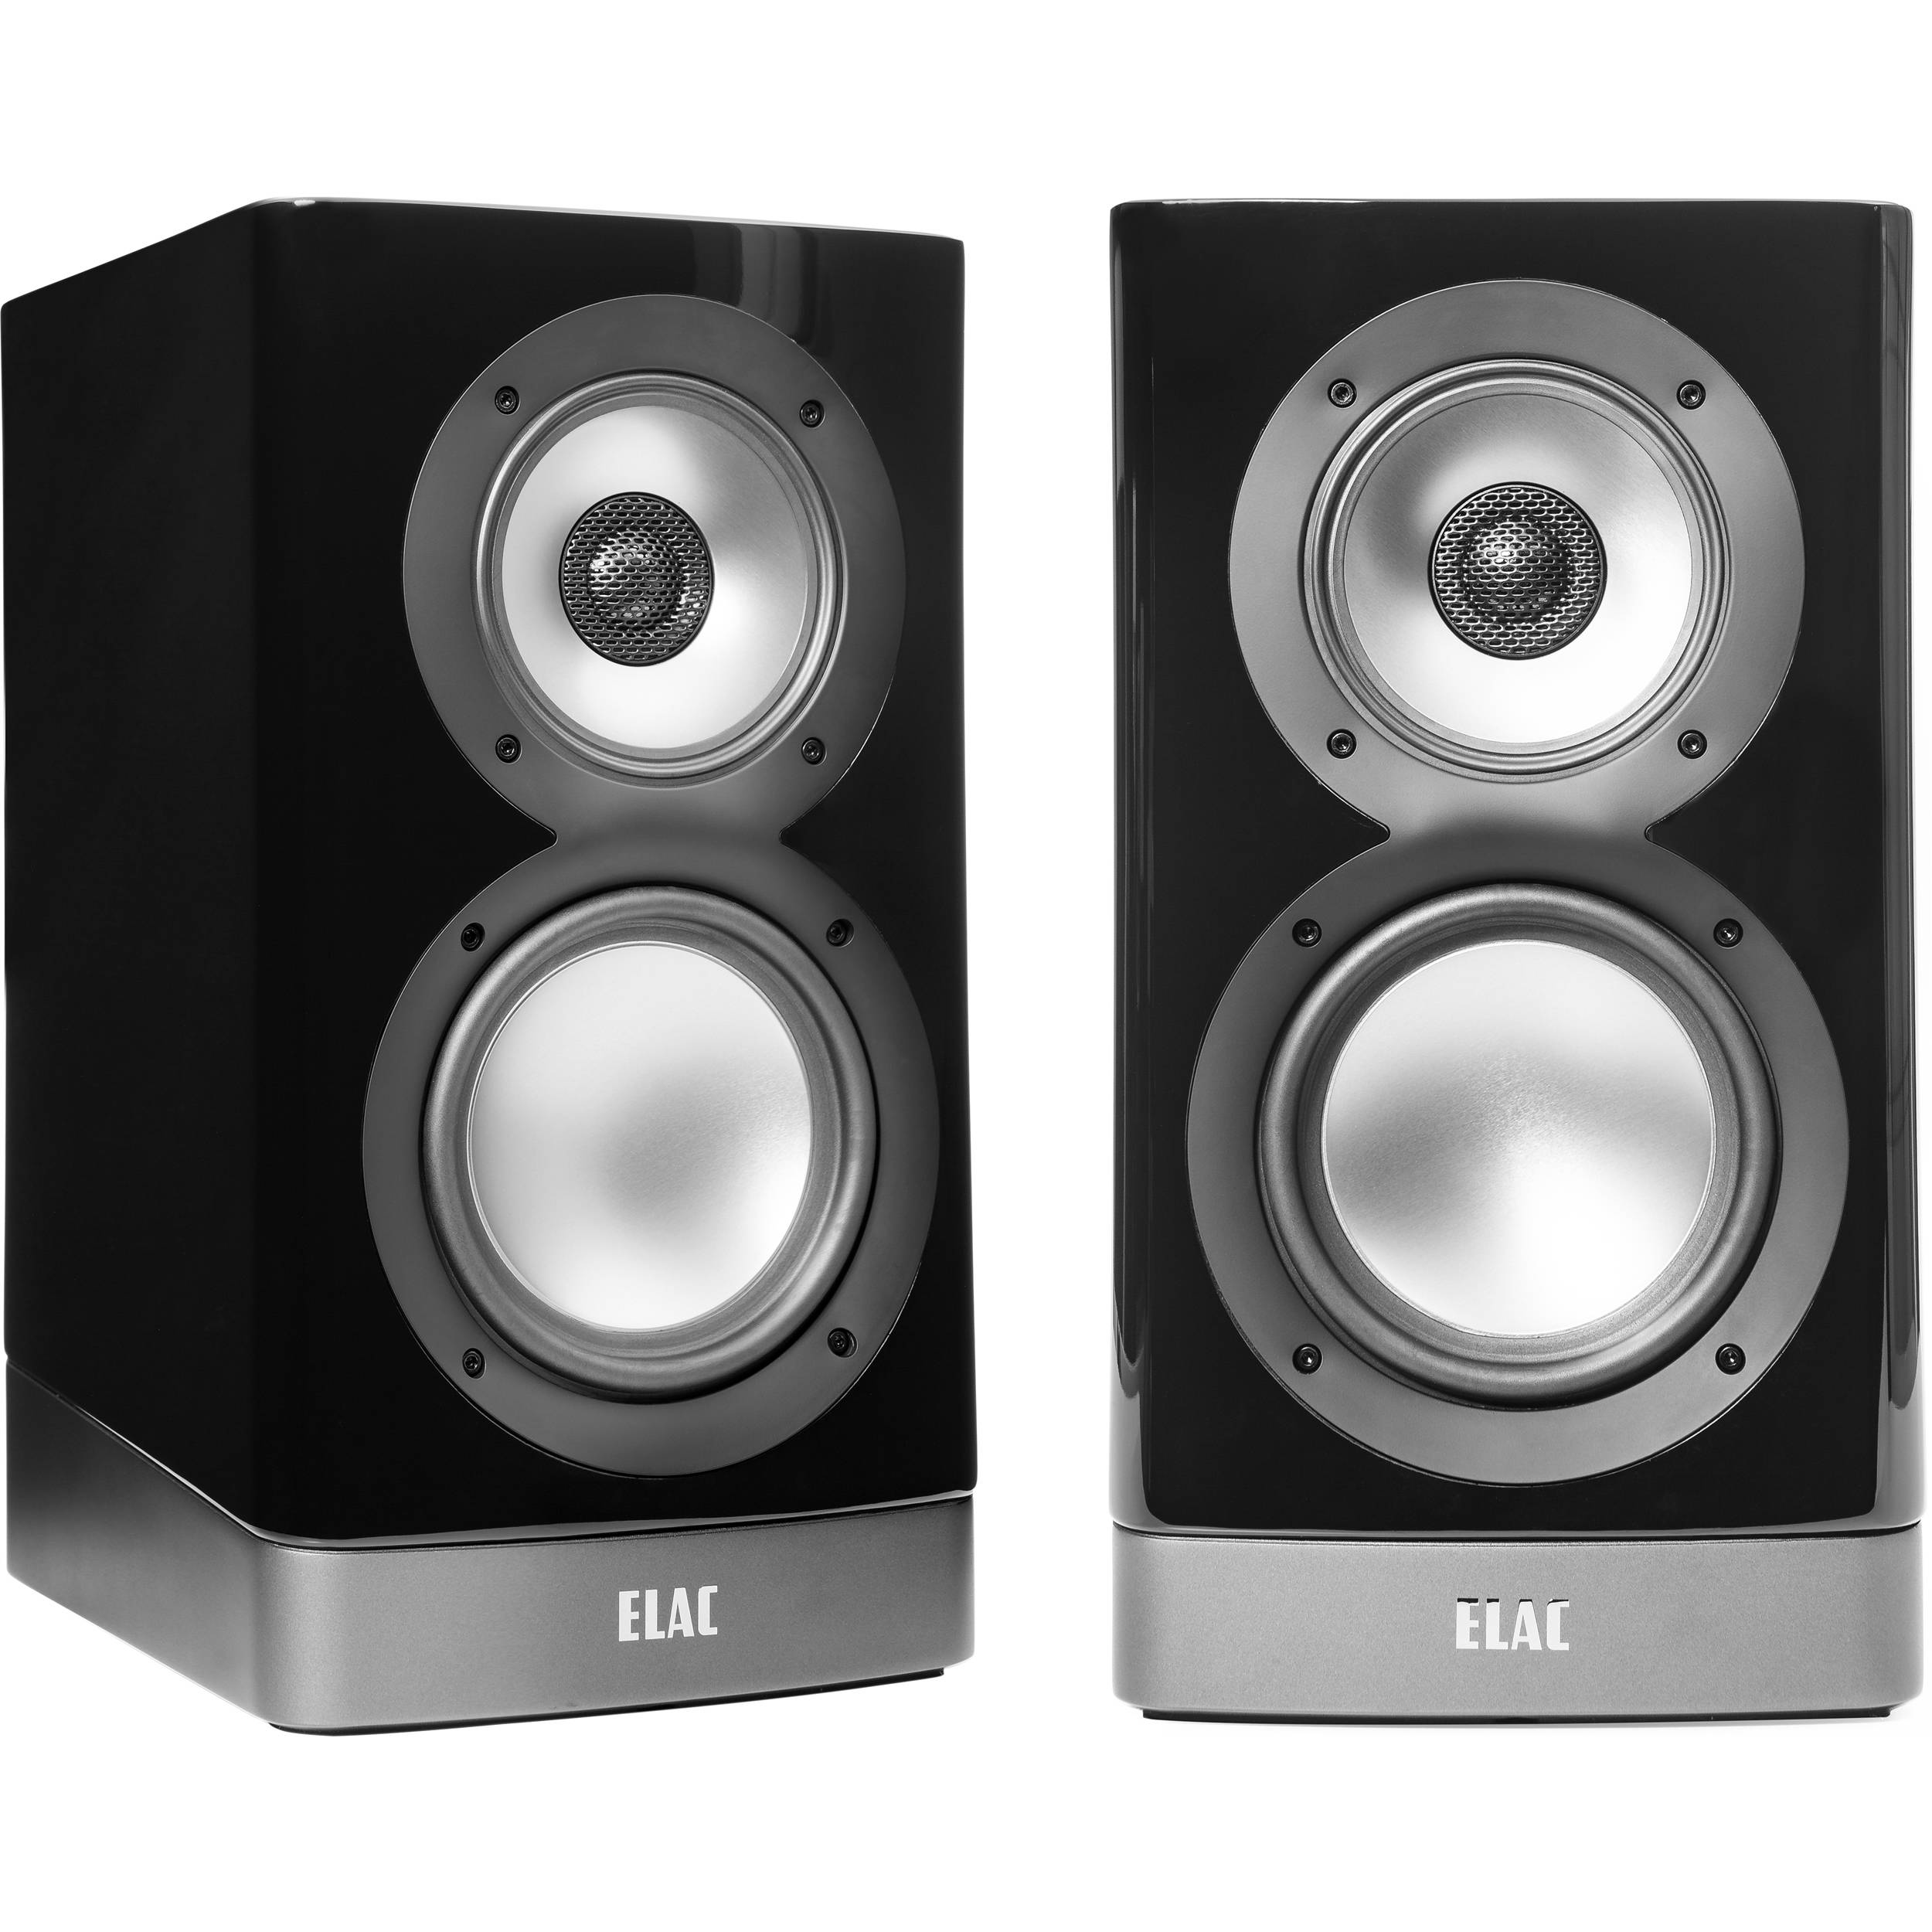 ELAC NAVIS ARB-51 3-Way Powered Bookshelf Speaker (Pair, Gloss Black)